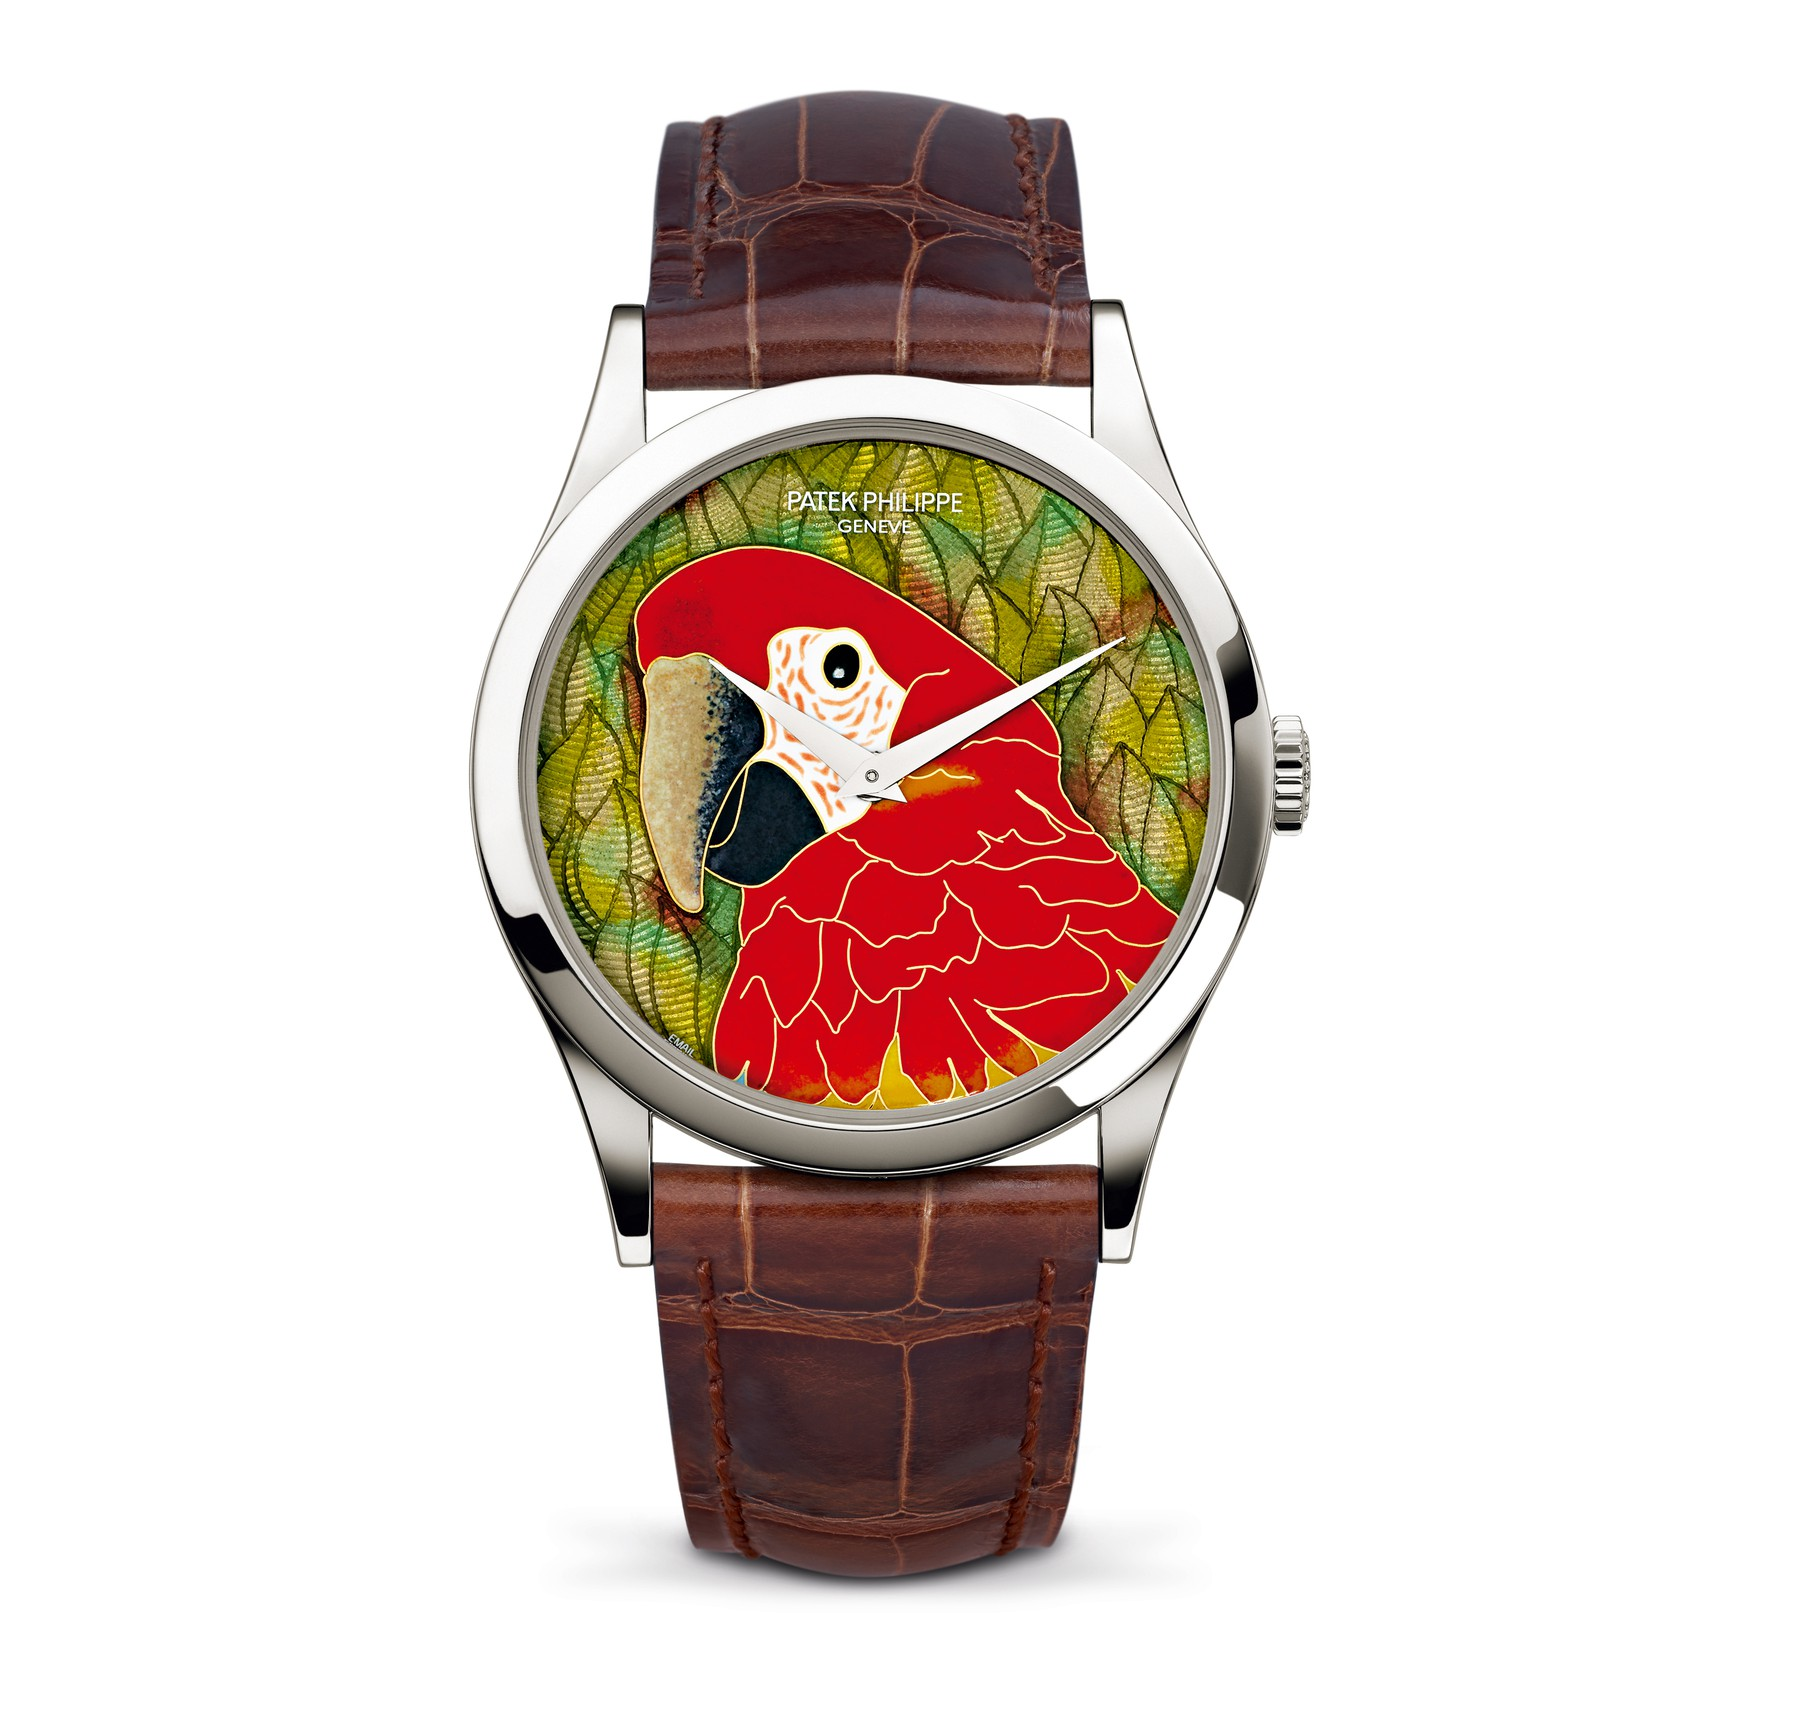 Baselworld 2019 Beautiful Enameling Art in Haute Horlogerie - champlevé enameling baselworld 2019 Baselworld 2019: Beautiful Enameling Art in Haute Horlogerie Baselworld 2019 Beautiful Enameling Art in Haute Horlogerie champlev   enameling